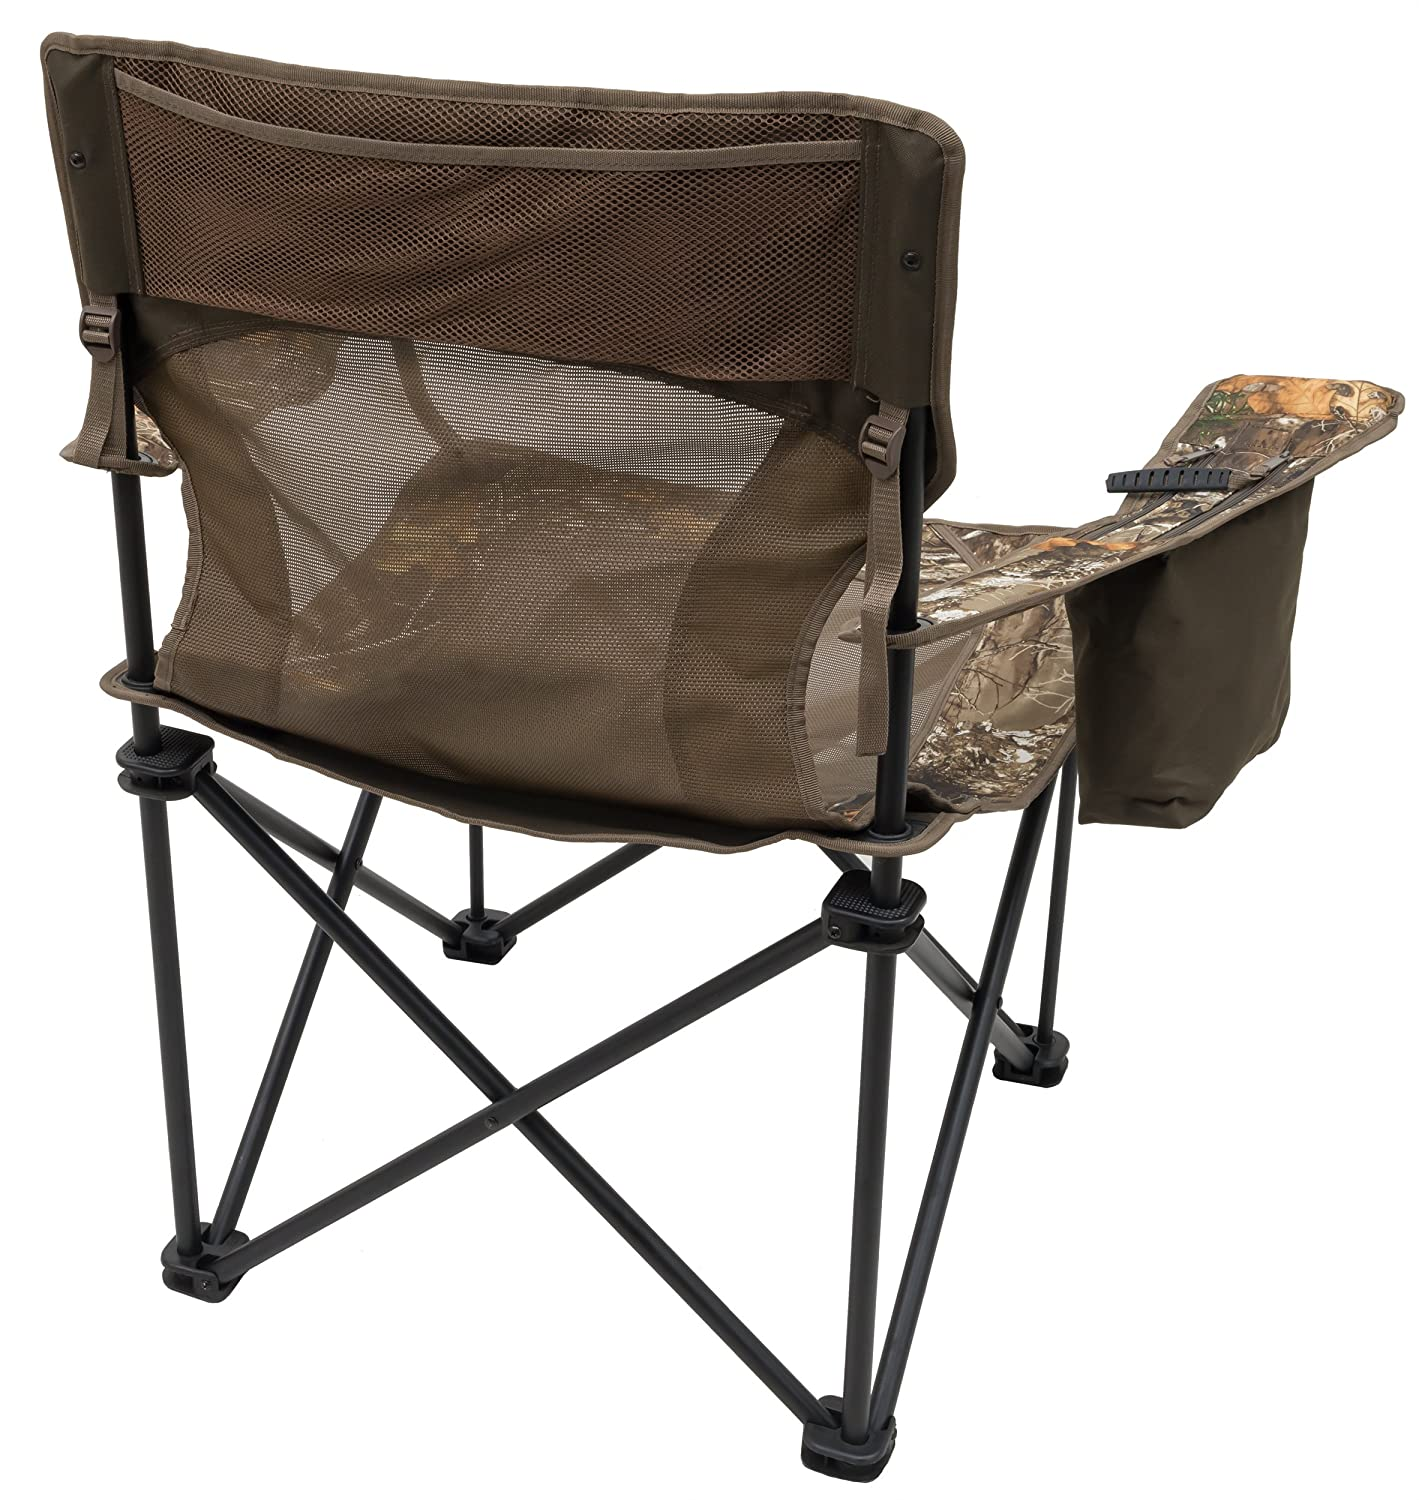 Amazon.com: Browning silla de camping Kodiak: Sports & Outdoors